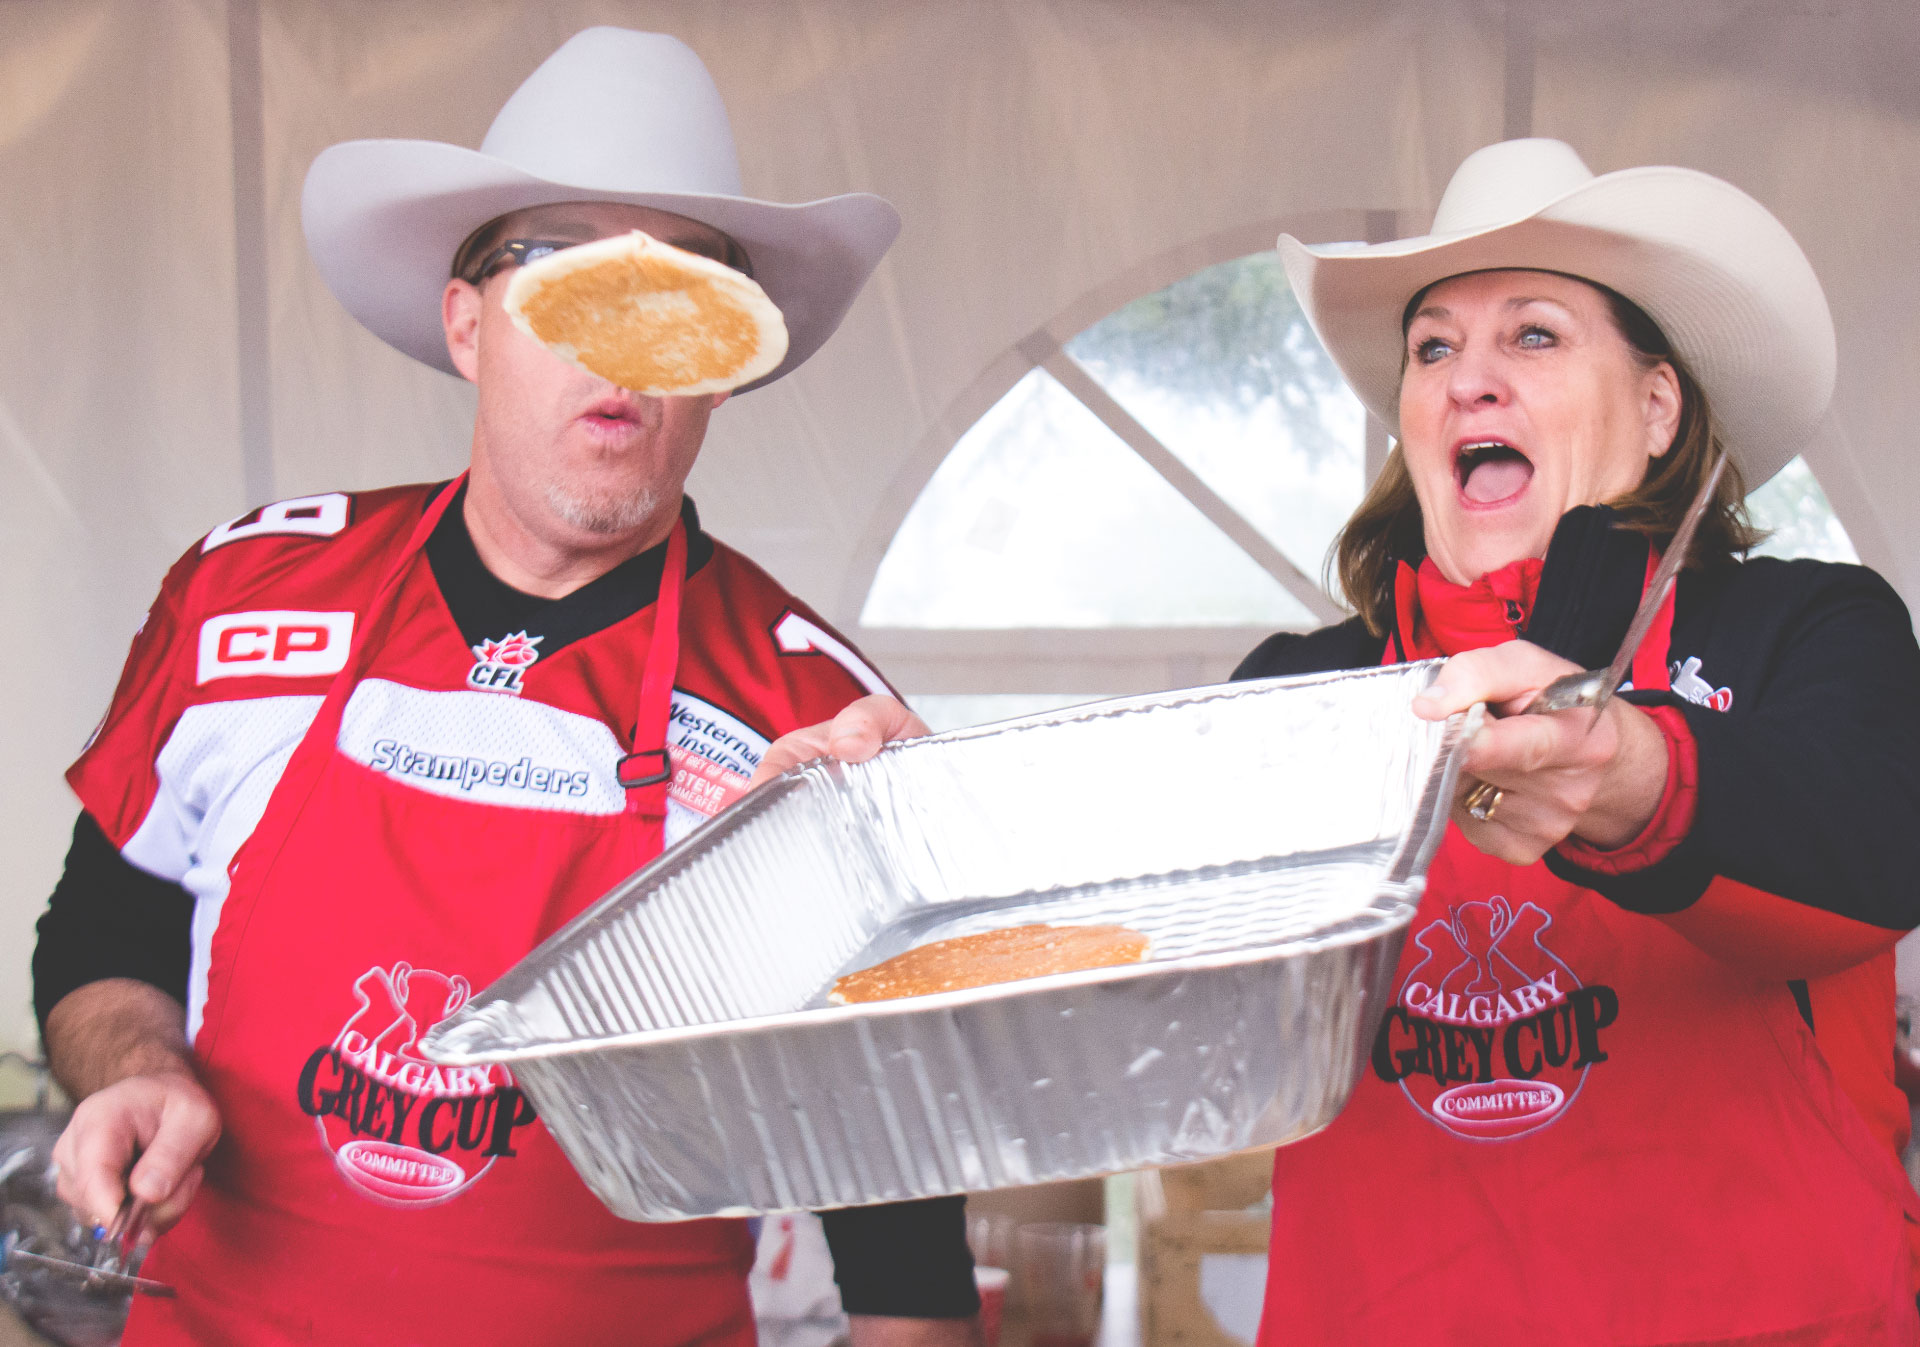 A traditional Calgary pancake breakfast at the Grey Cup.